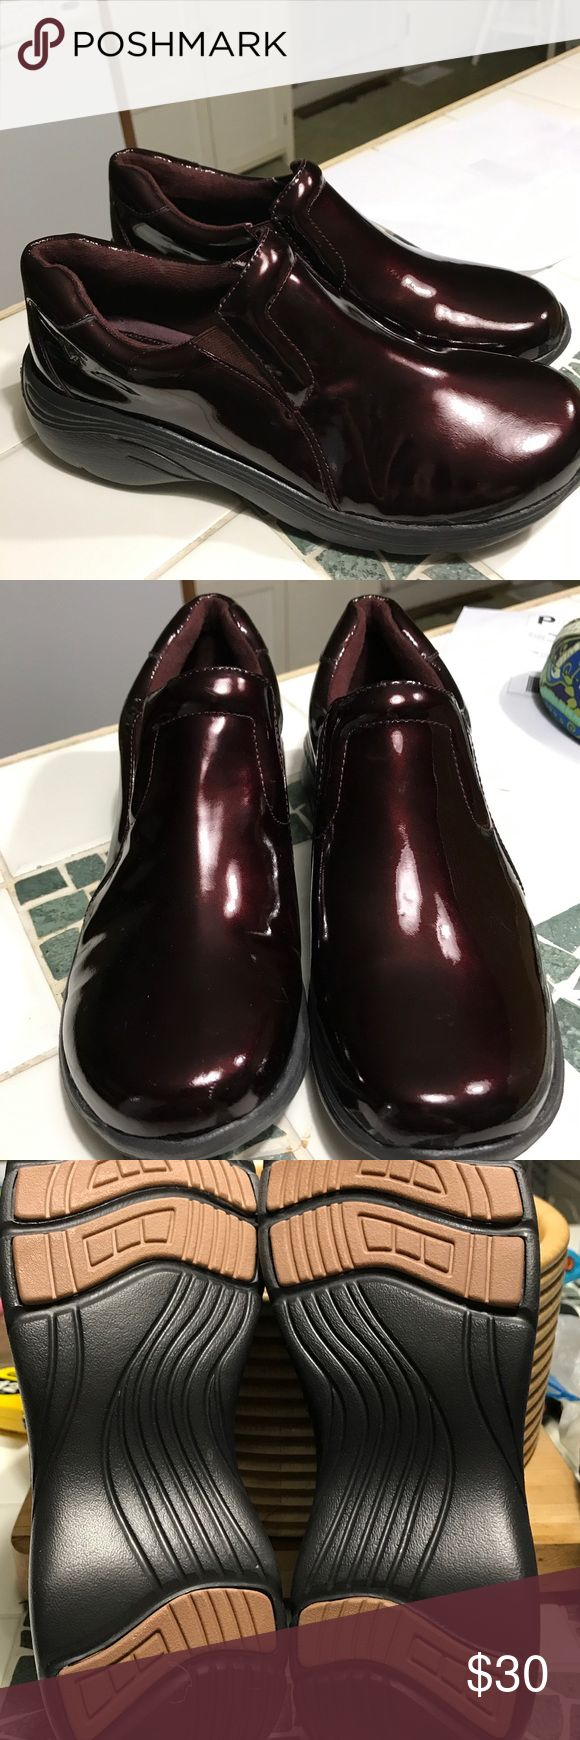 Nurse Mates shoes size 10 These are great shoes and I think I wore them 3 times. I just don't need them anymore.  They are a burgundy color Nurse Mates Shoes Flats & Loafers